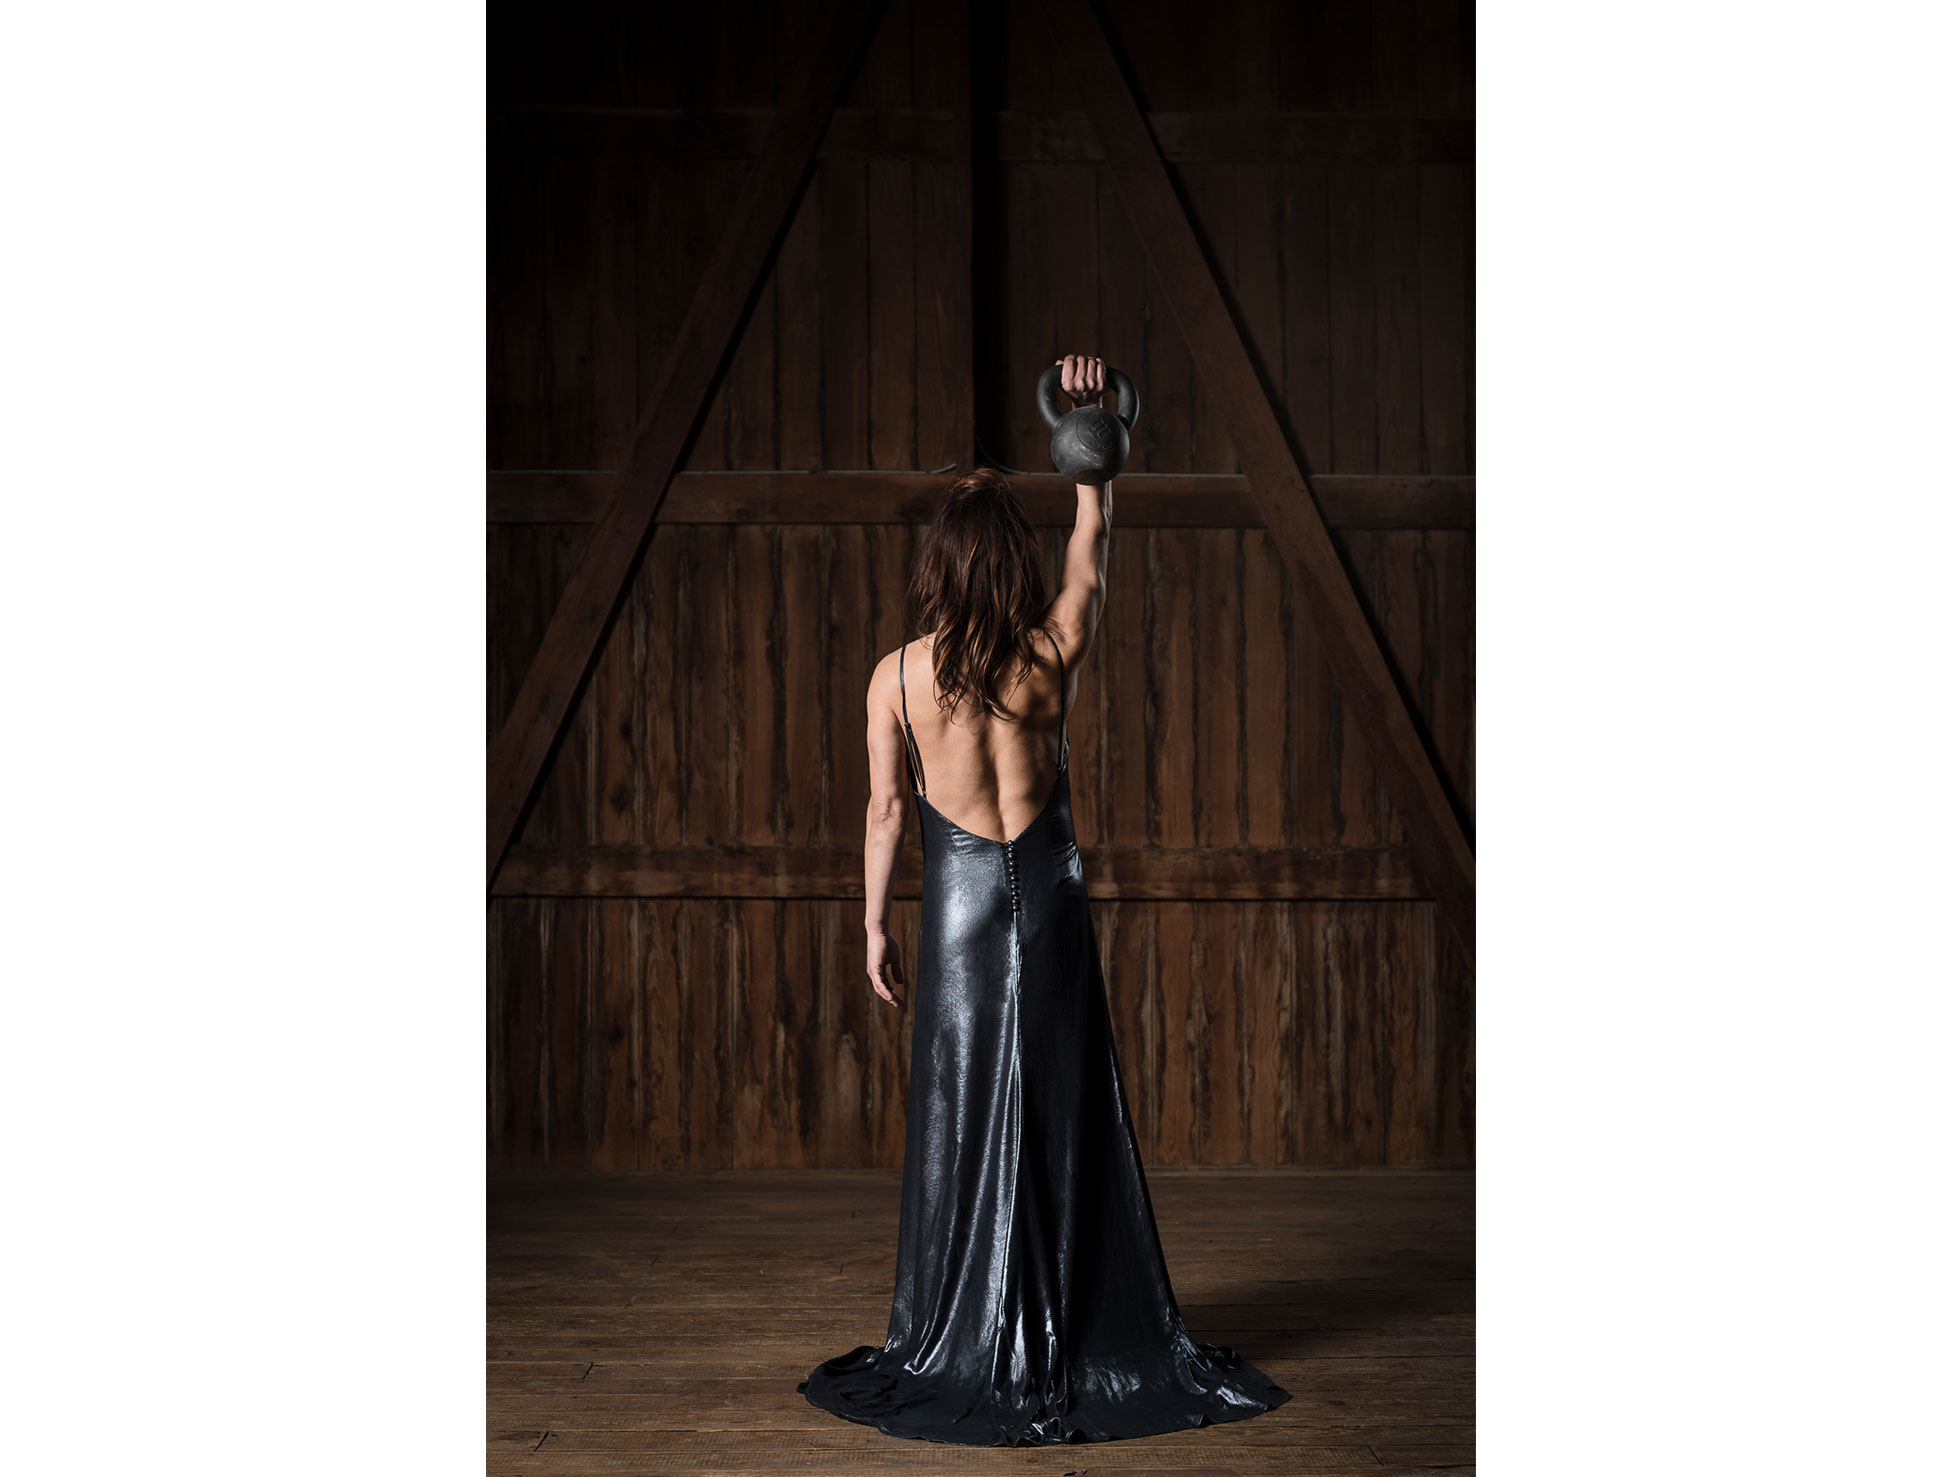 A woman in a feminine evening gown fiercely holds a kettlebell over her head, displaying physical strength and toughness as a female.